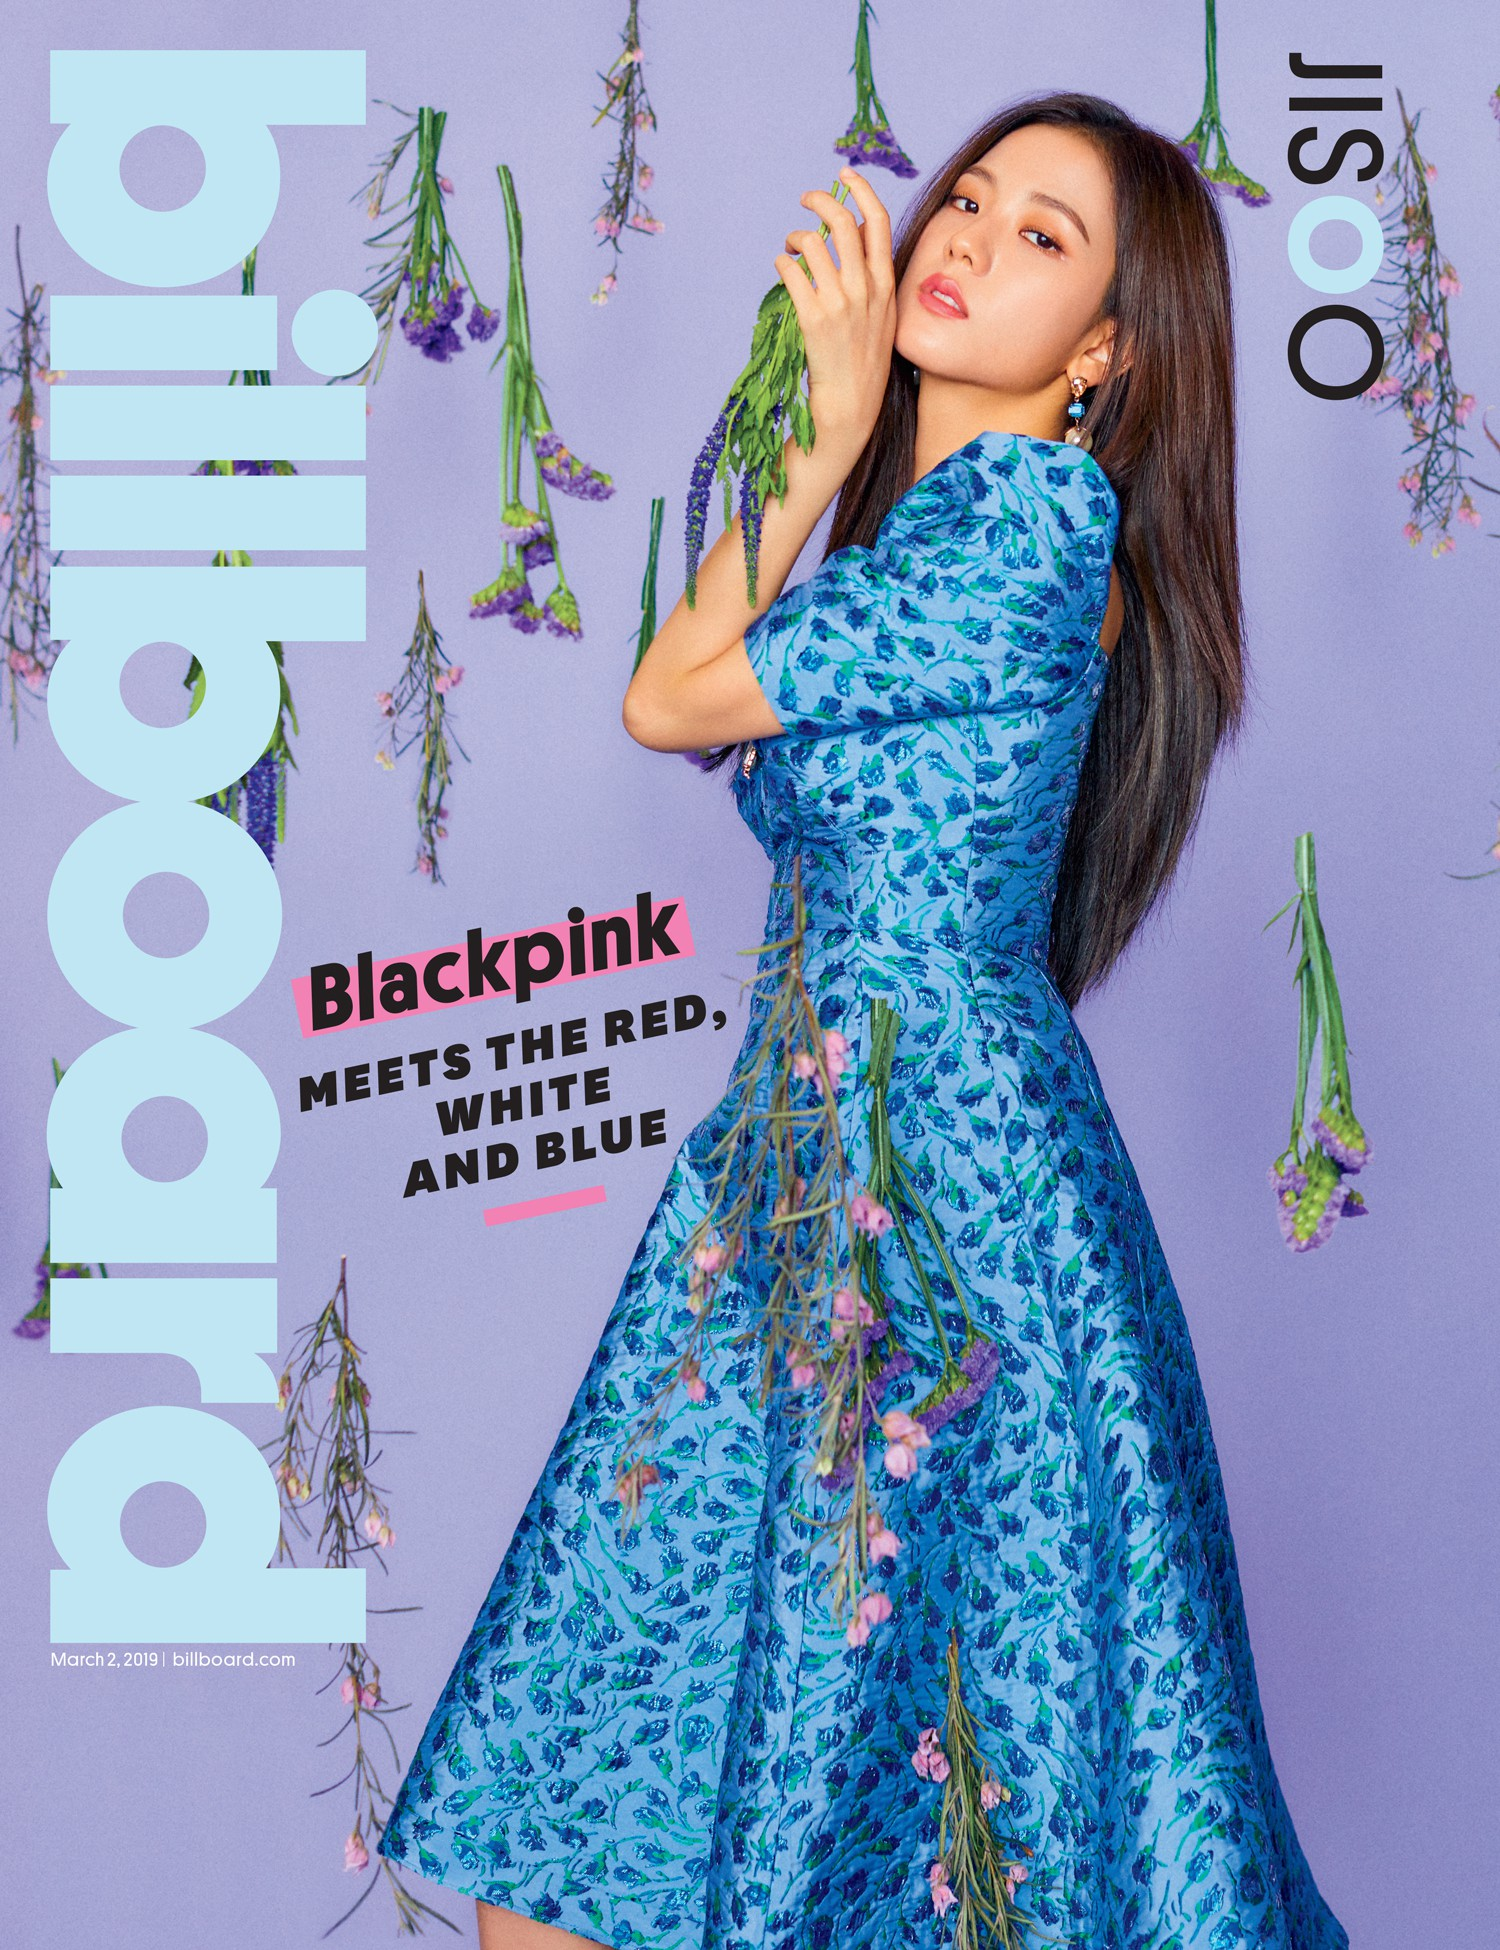 Black Pink was the first female Kpop girl to cover Billboard magazine's cover: beauty and charisma peak here! - Photo 11.